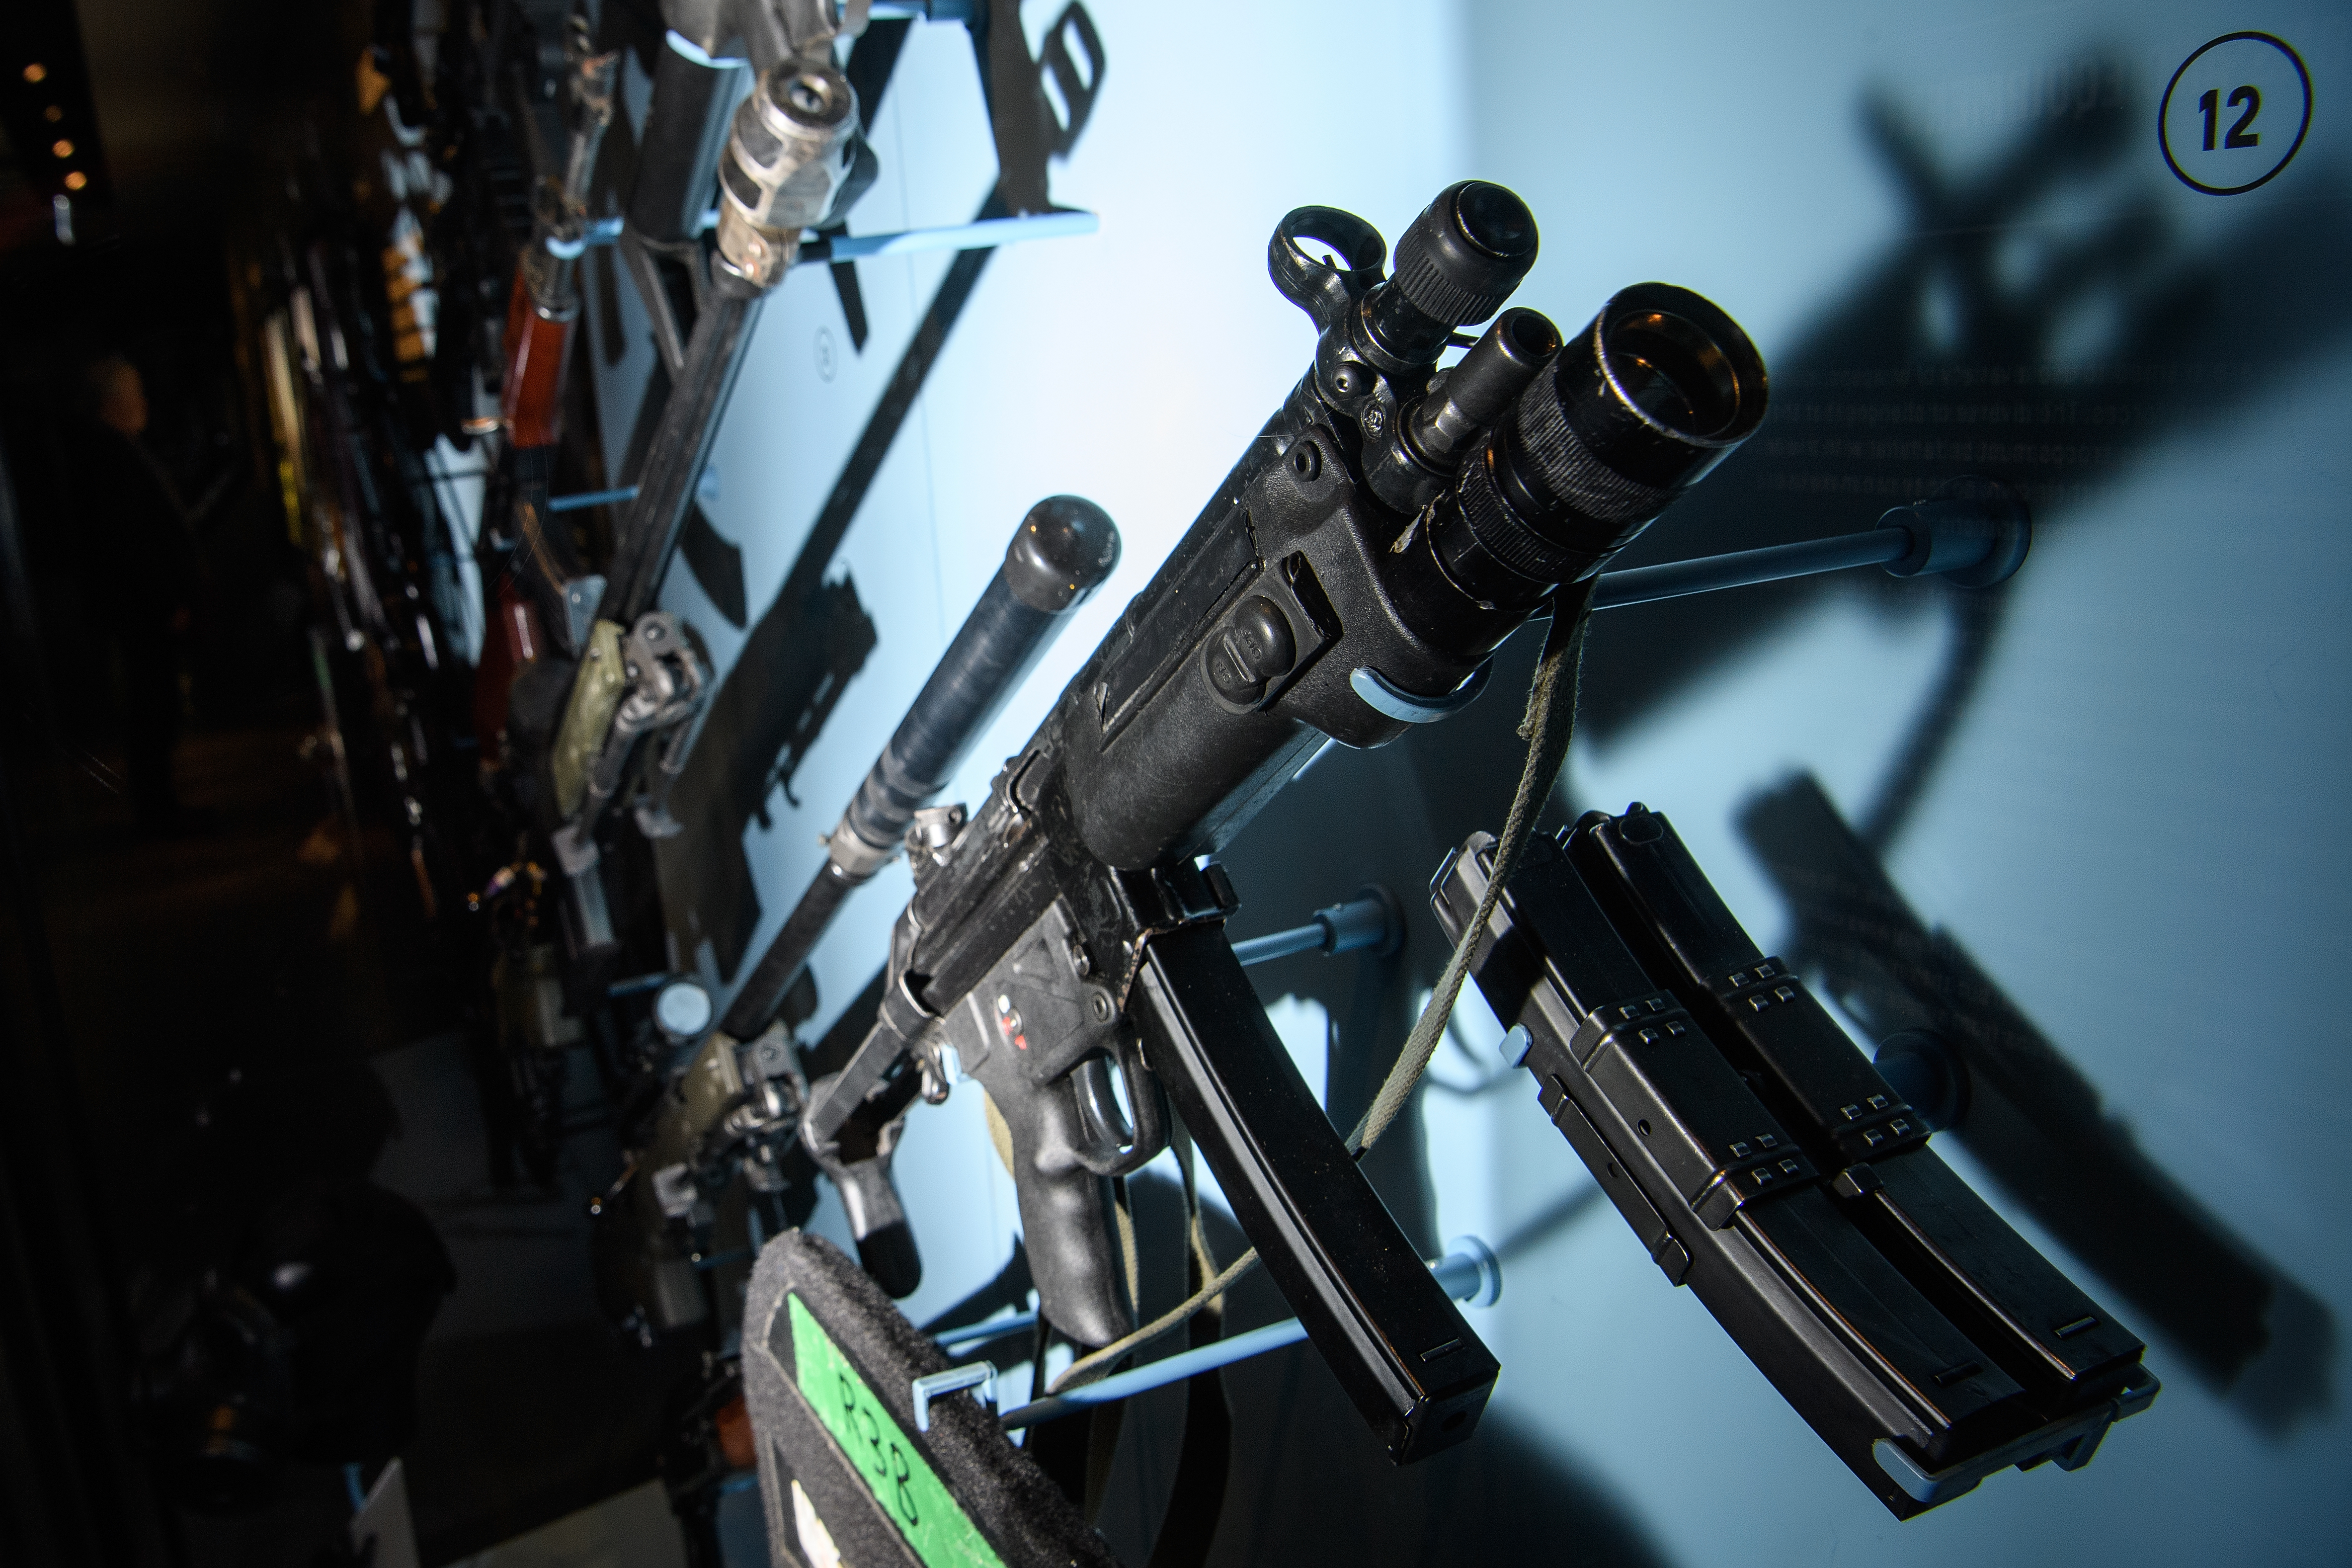 MP5 submachine gun in display case at National Army Museum in London